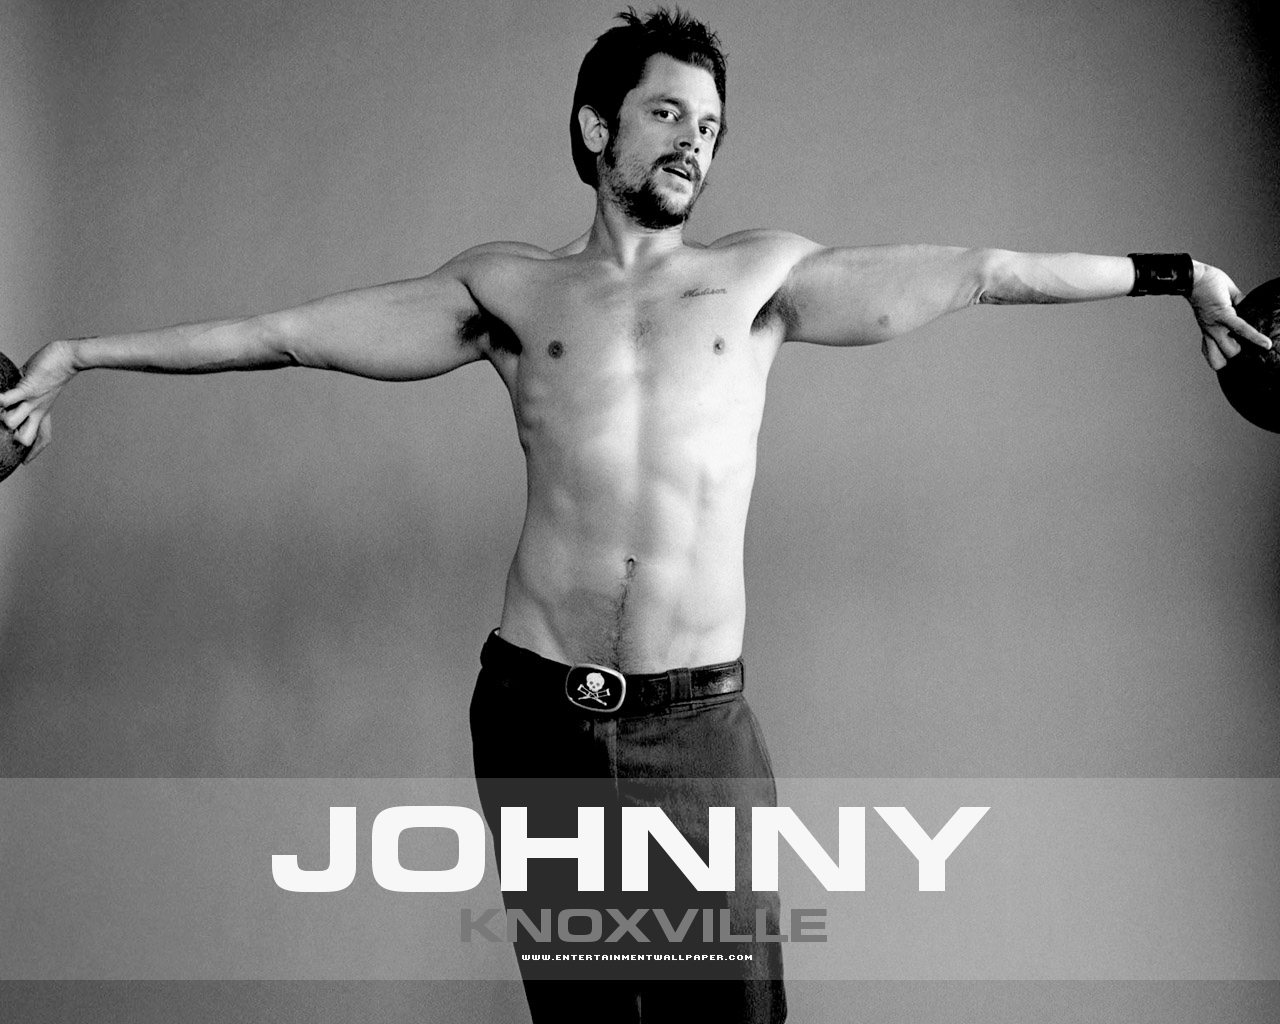 1280x1024 - Johnny Knoxville Wallpapers 18